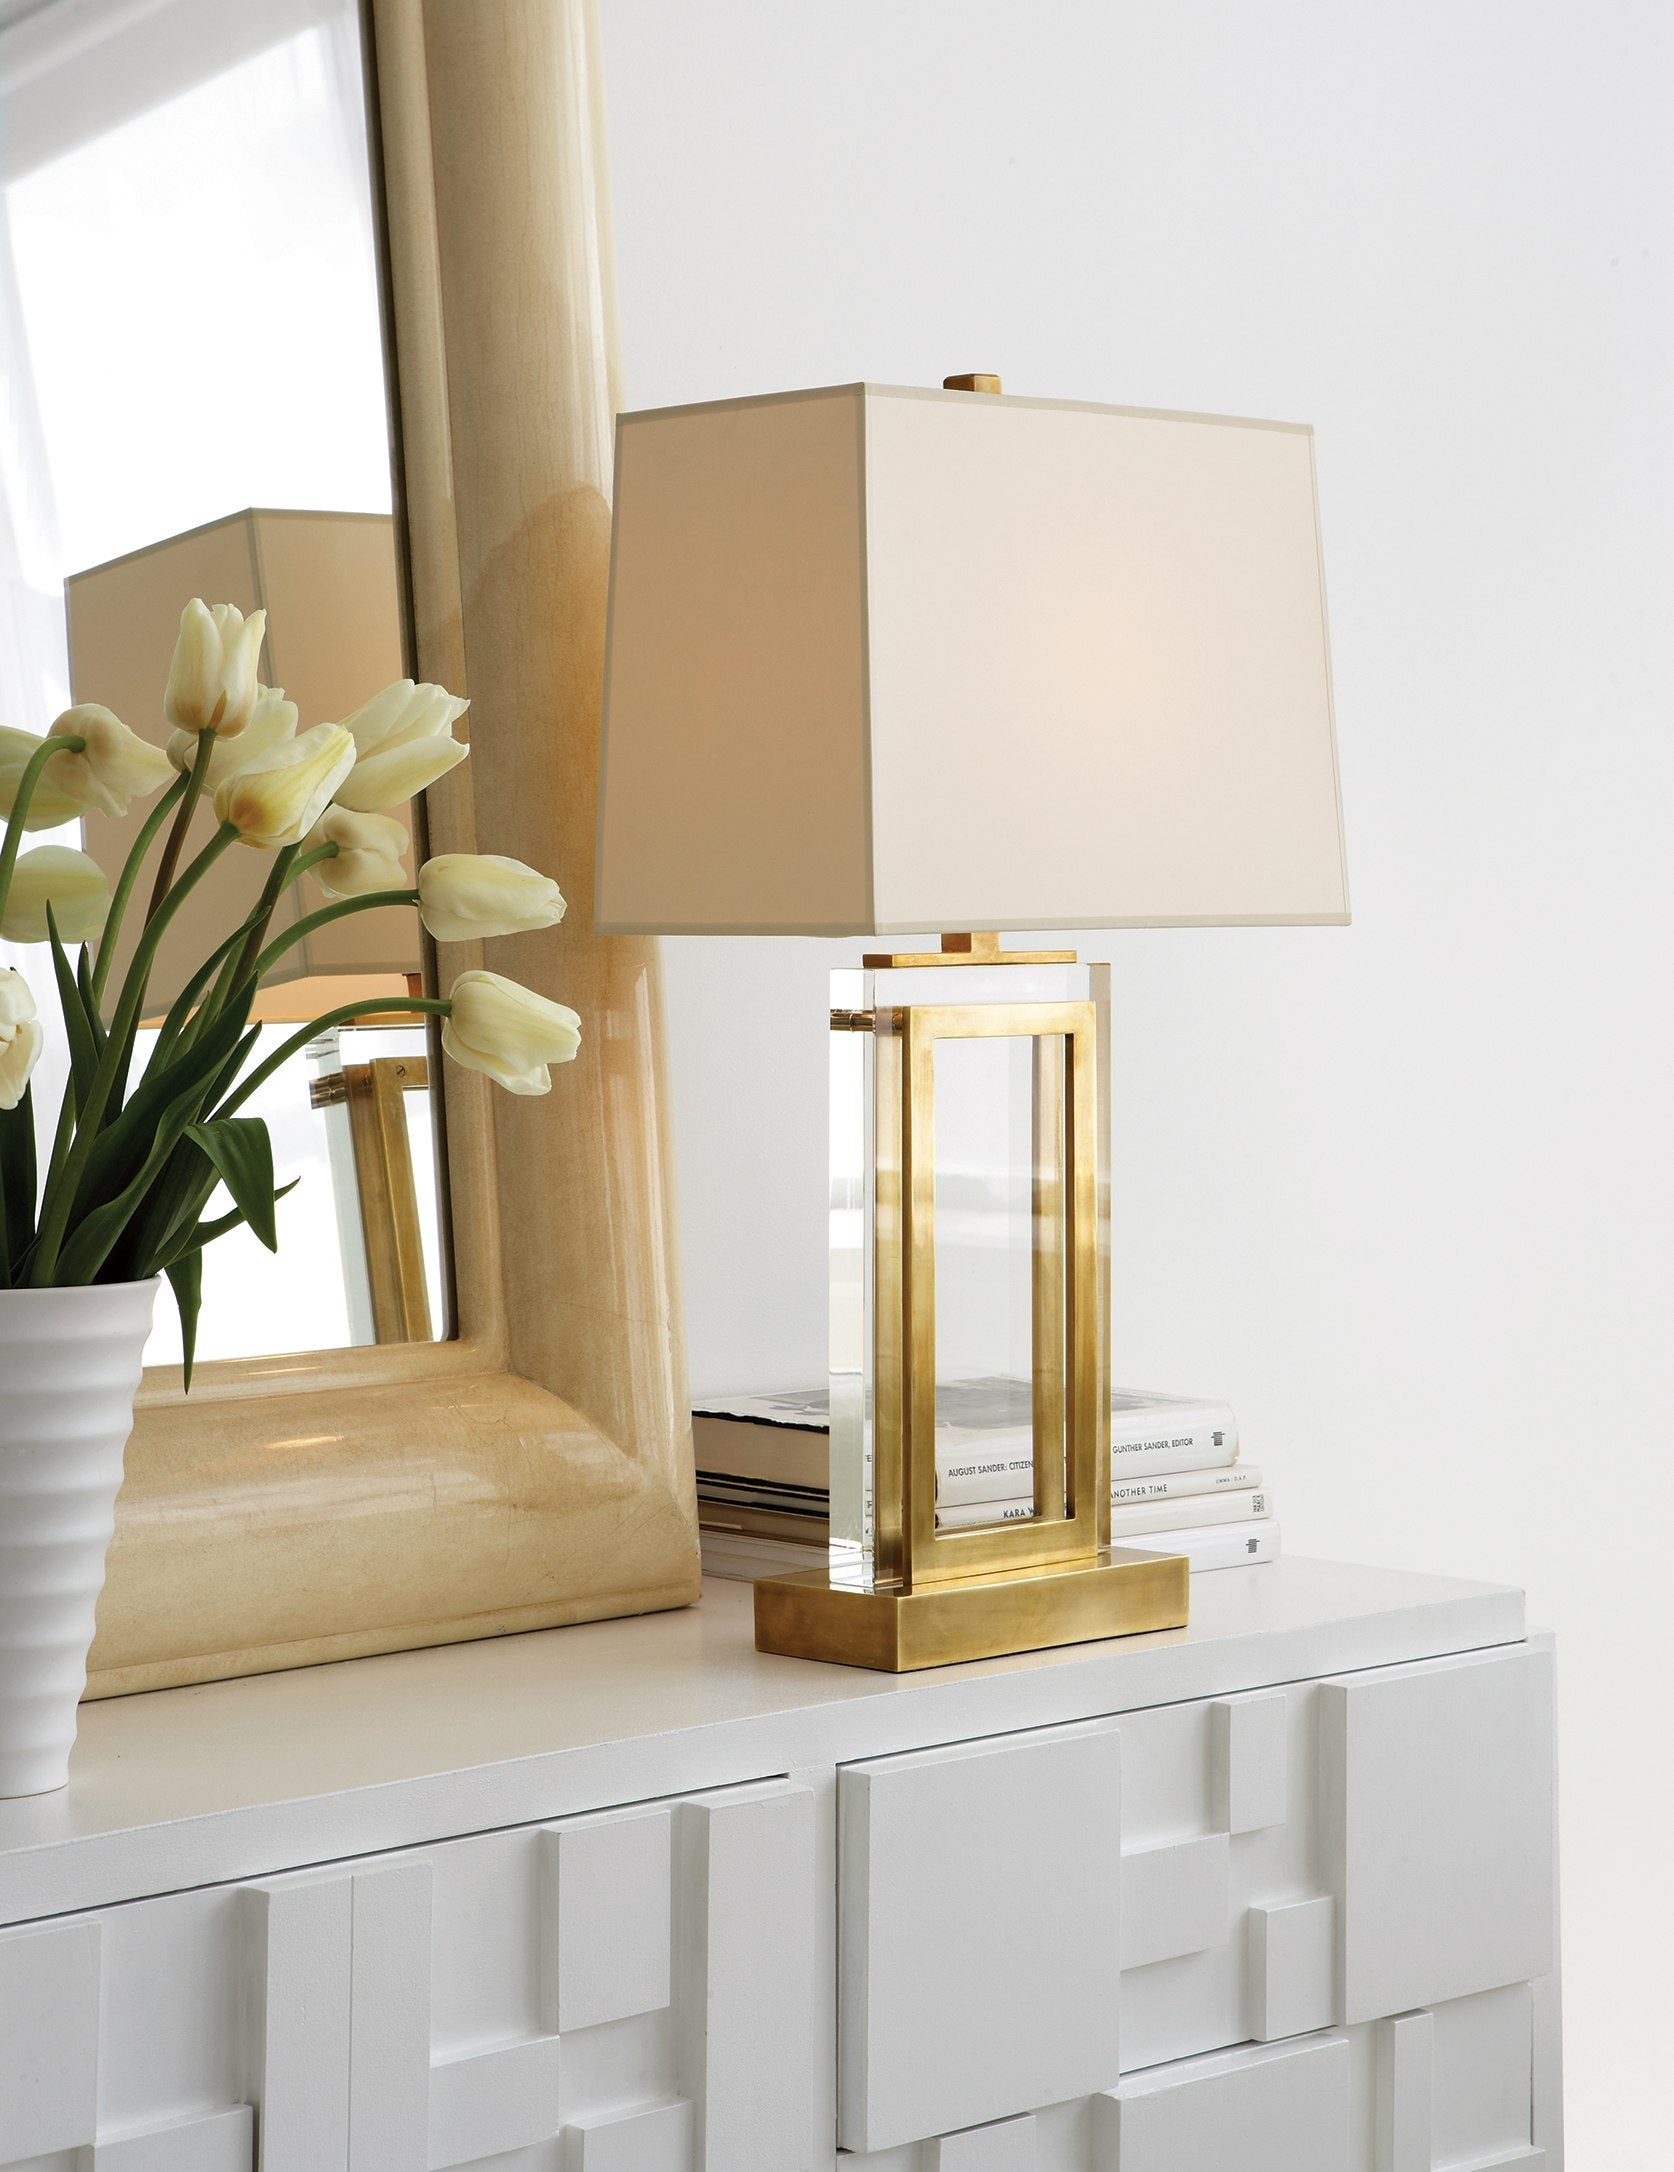 The Best of Lighting Design: 6 Luxury Brands to Know - Visual Comfort & Co. - LuxDeco